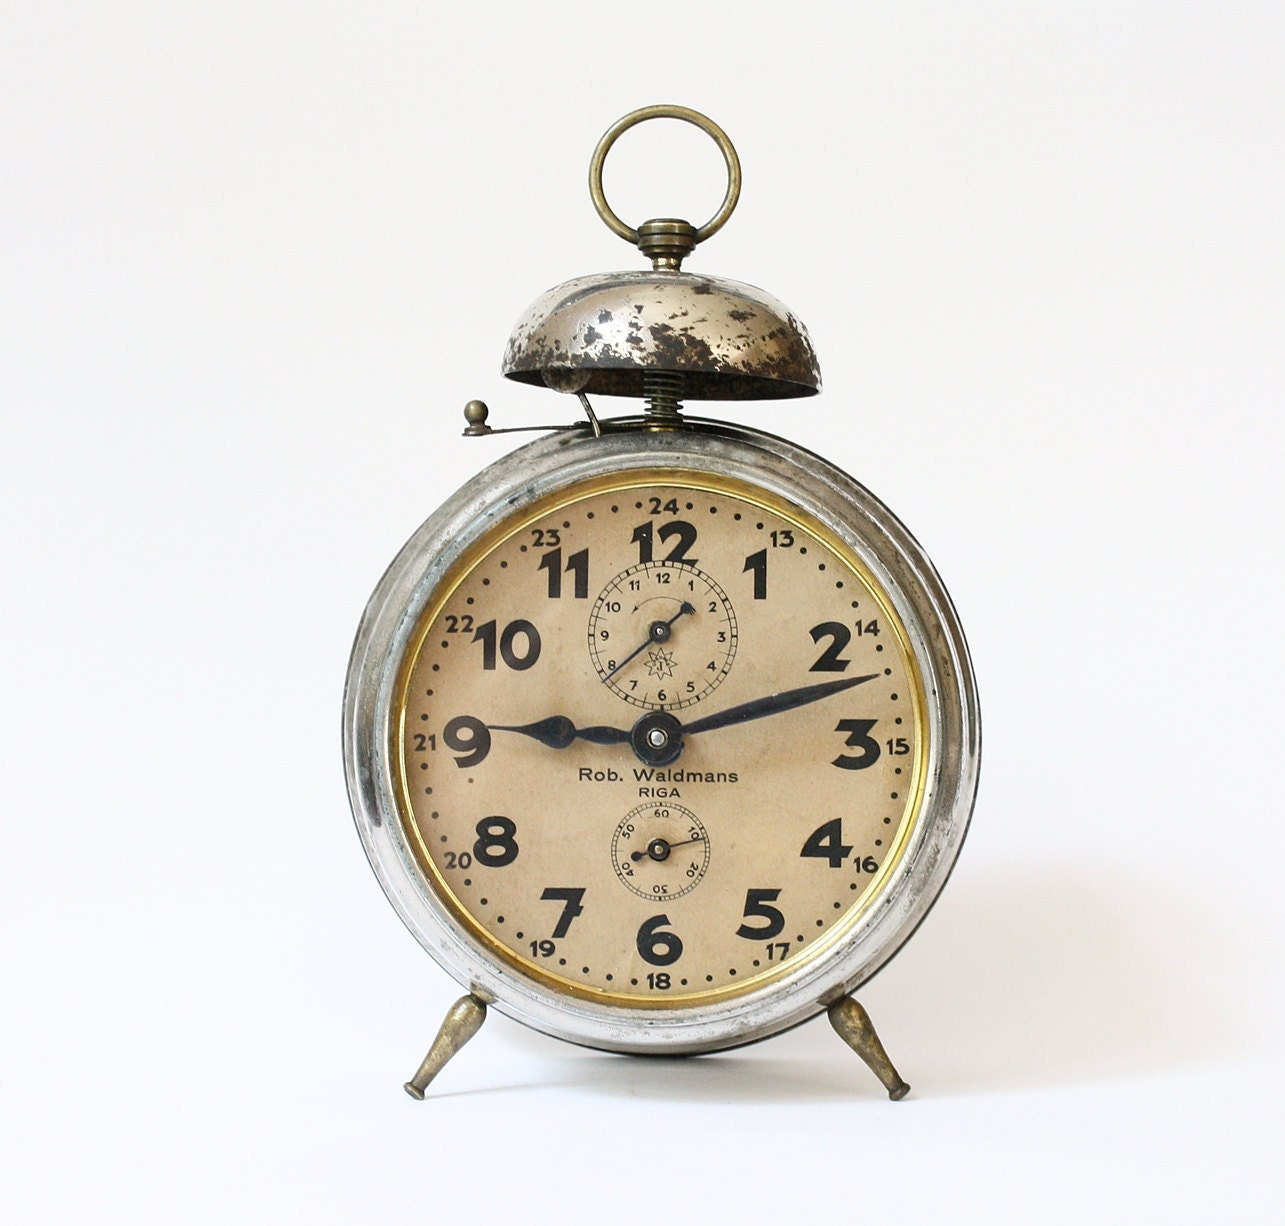 Rare Antique Clocks Bing Images